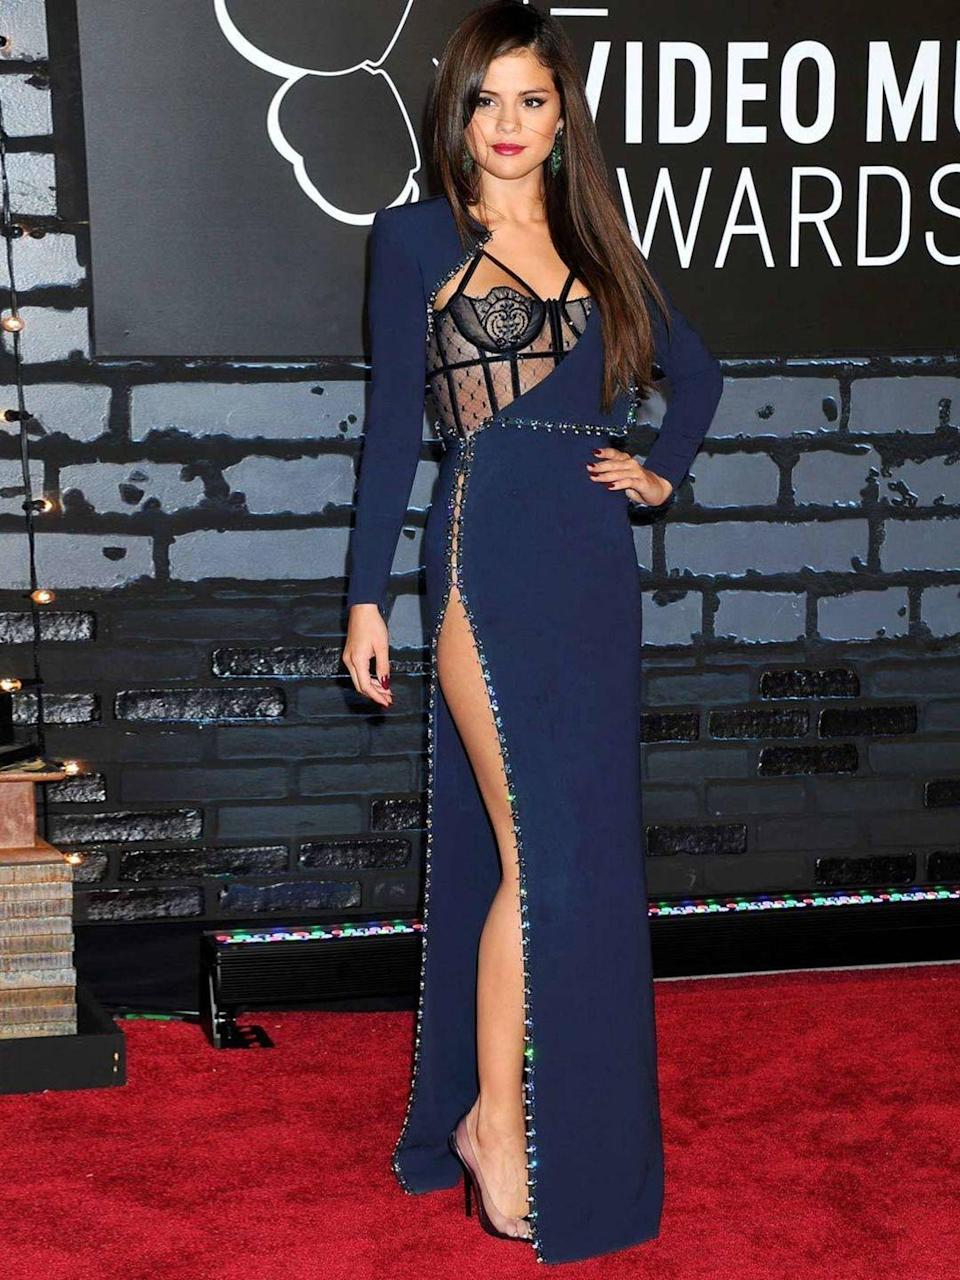 <p>Selena Gomez is at the MTV Video Music Awards in a thigh high slit dress by Atelier Versace, August 2013.</p>